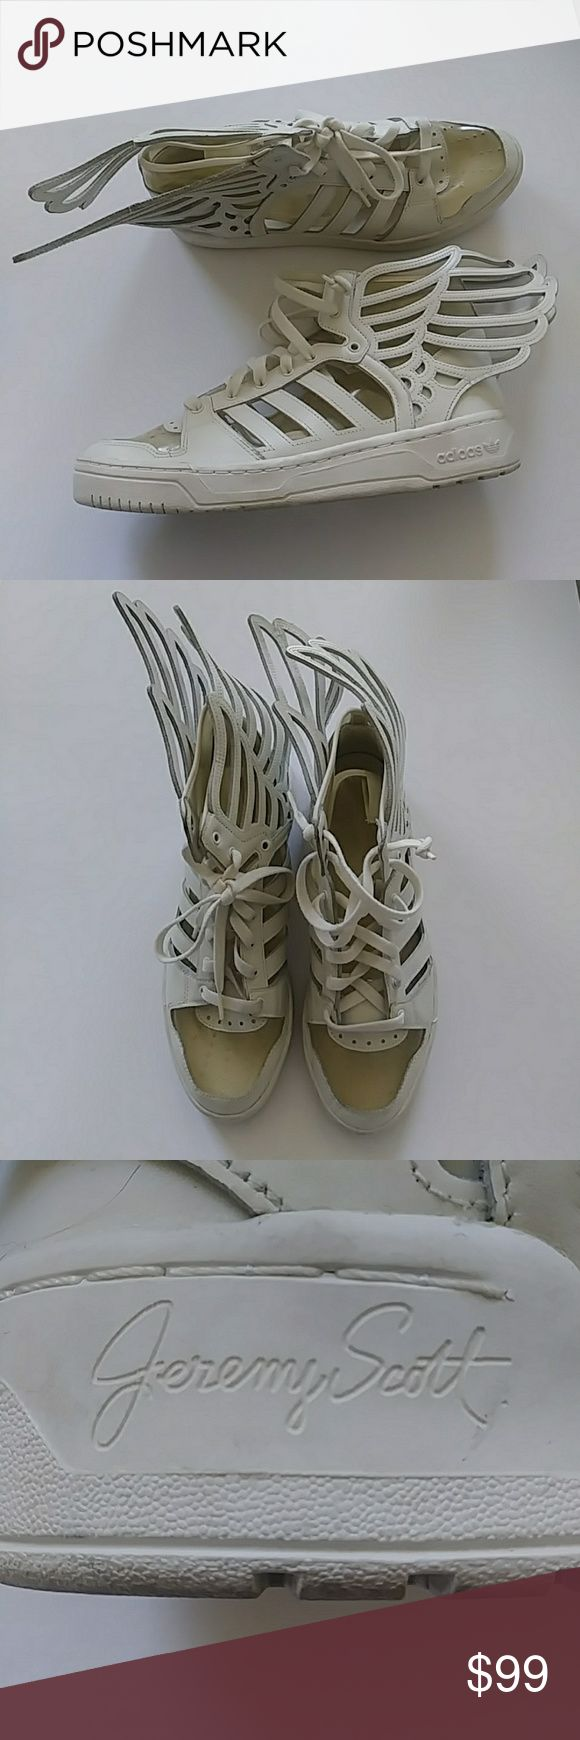 Jeremy scott adidas white winged shoes sz:us12 Jeremy scott adidas white winged shoes sz:us12 adidas Shoes Sneakers